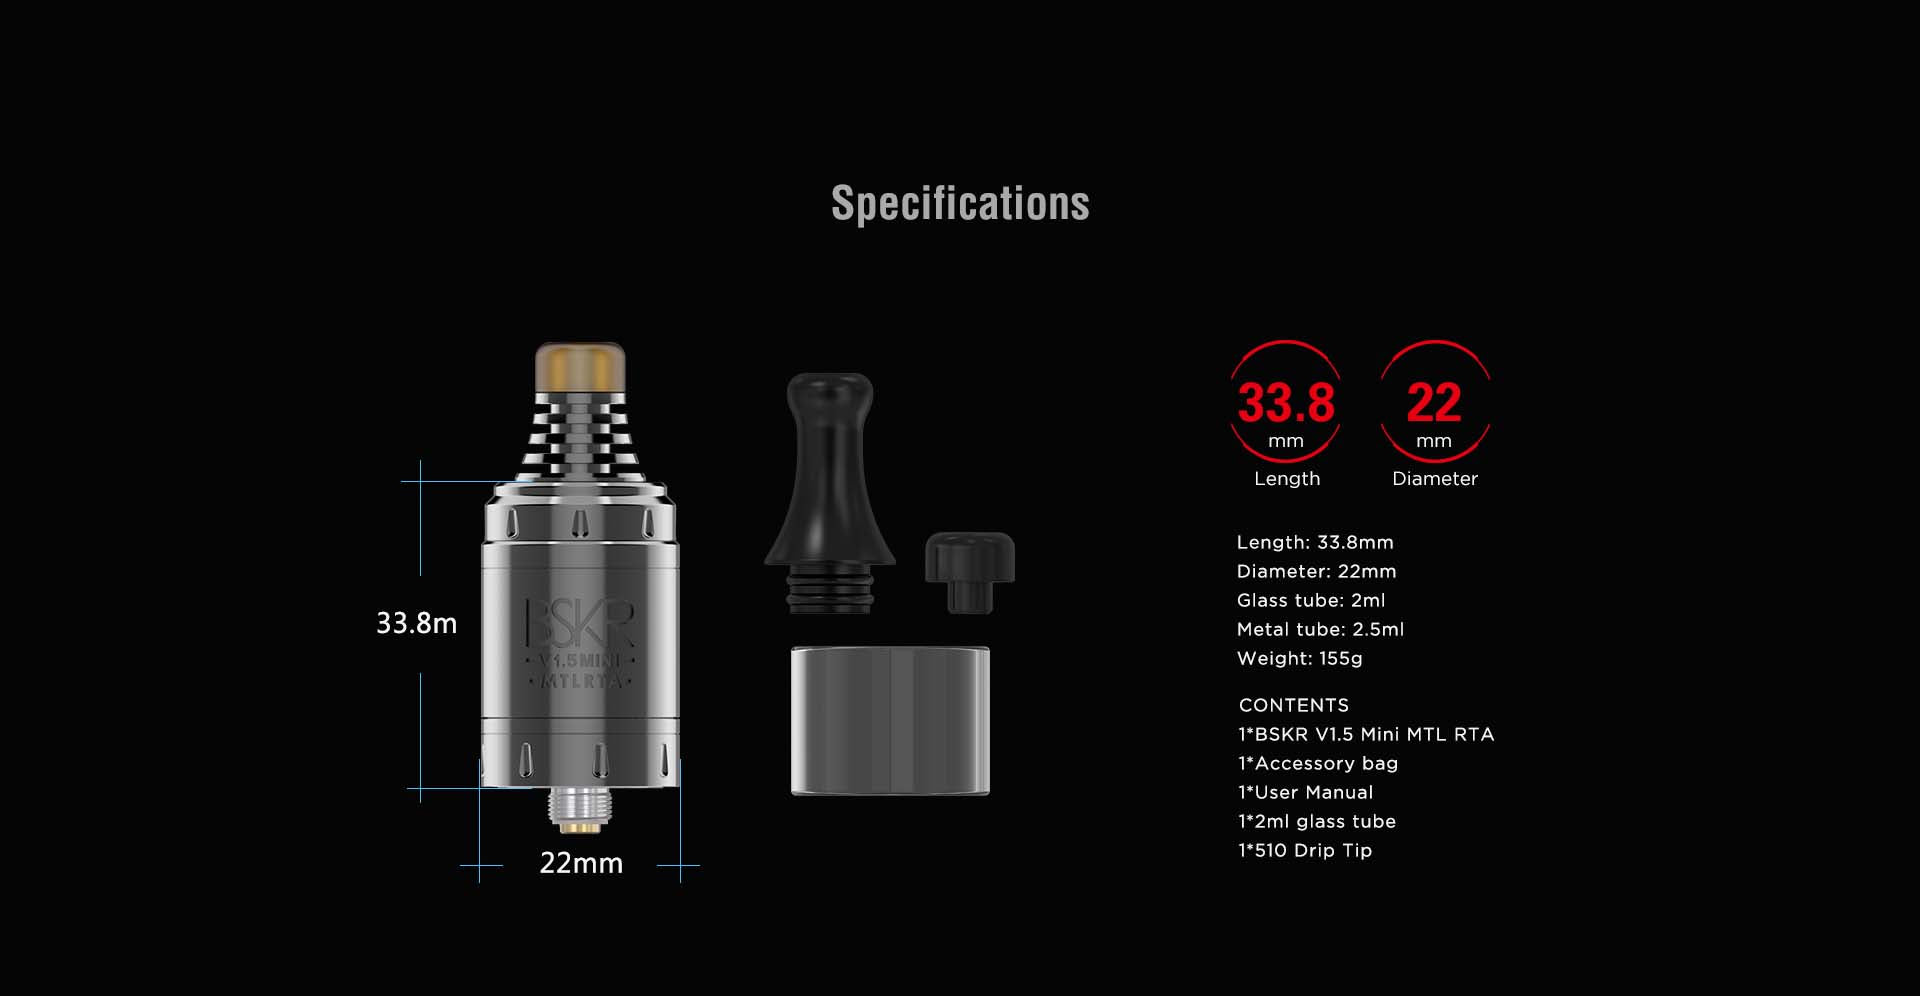 Vandy Vape Berserker V1.5 Mini MTL RTA Specifications